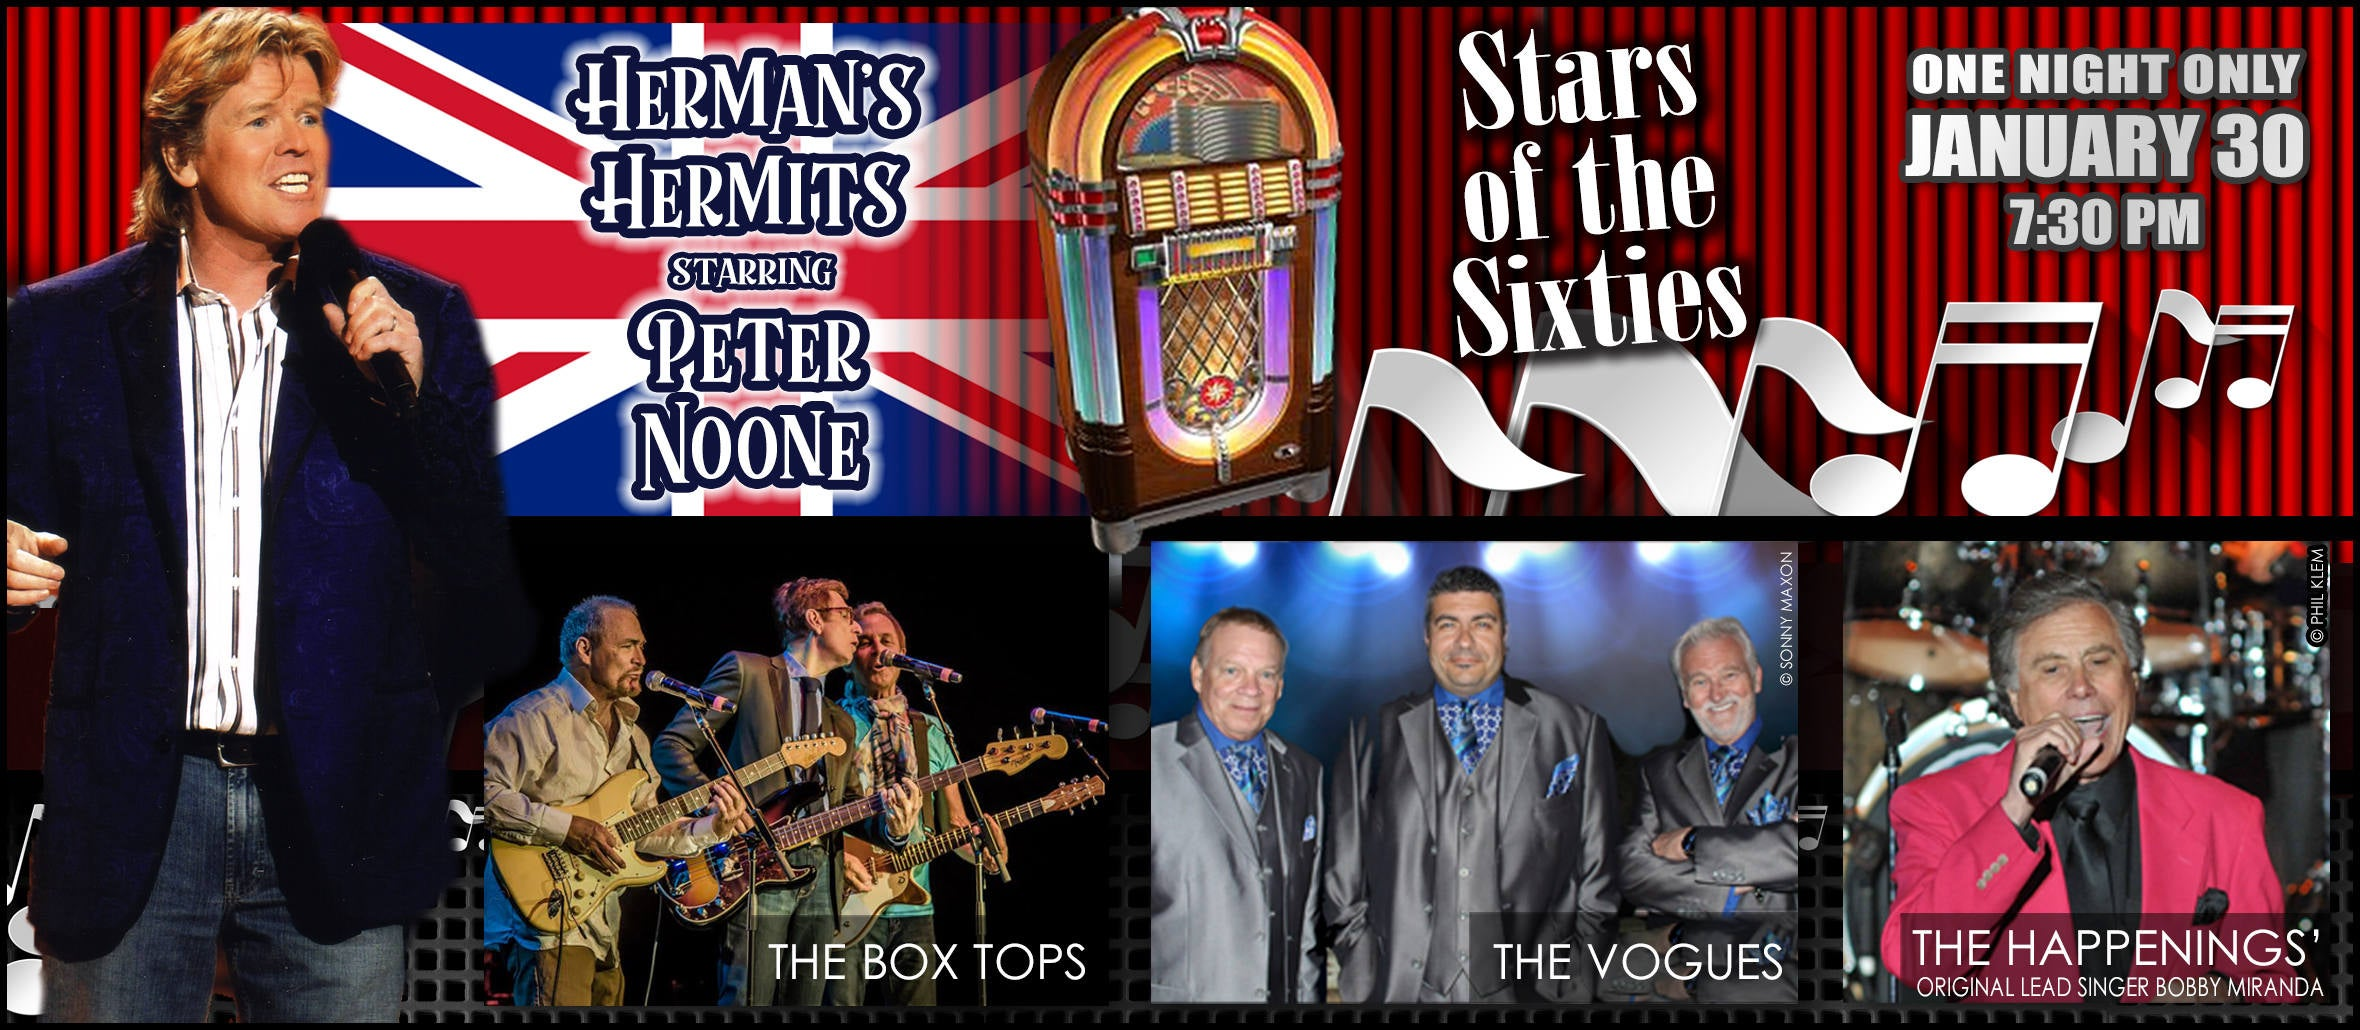 Stars of the Sixties with Herman's Hermits & More